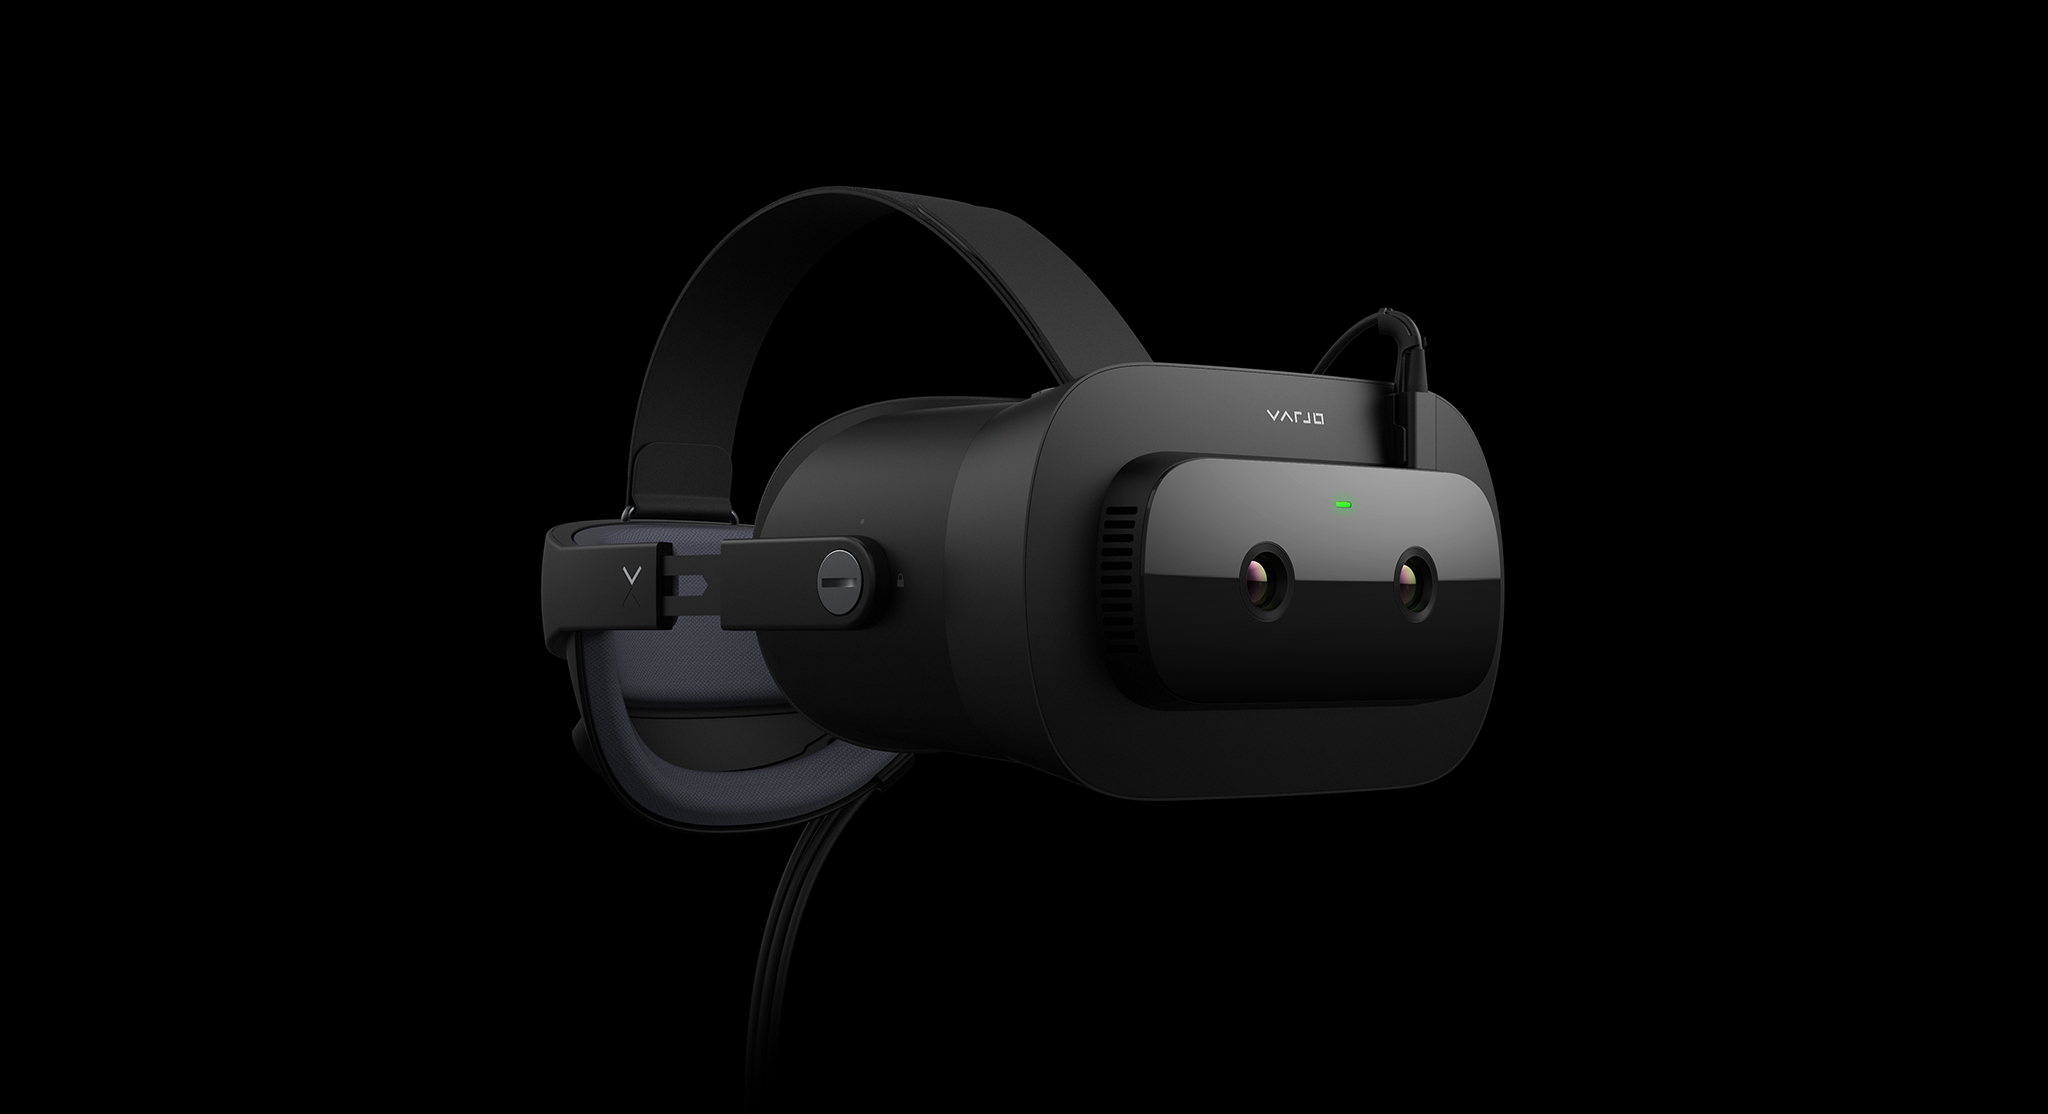 Varjo XR-1 Developer Edition is a mixed reality device with photorealistic visual fidelity, integrated eye tracking, and ultra-low latency.